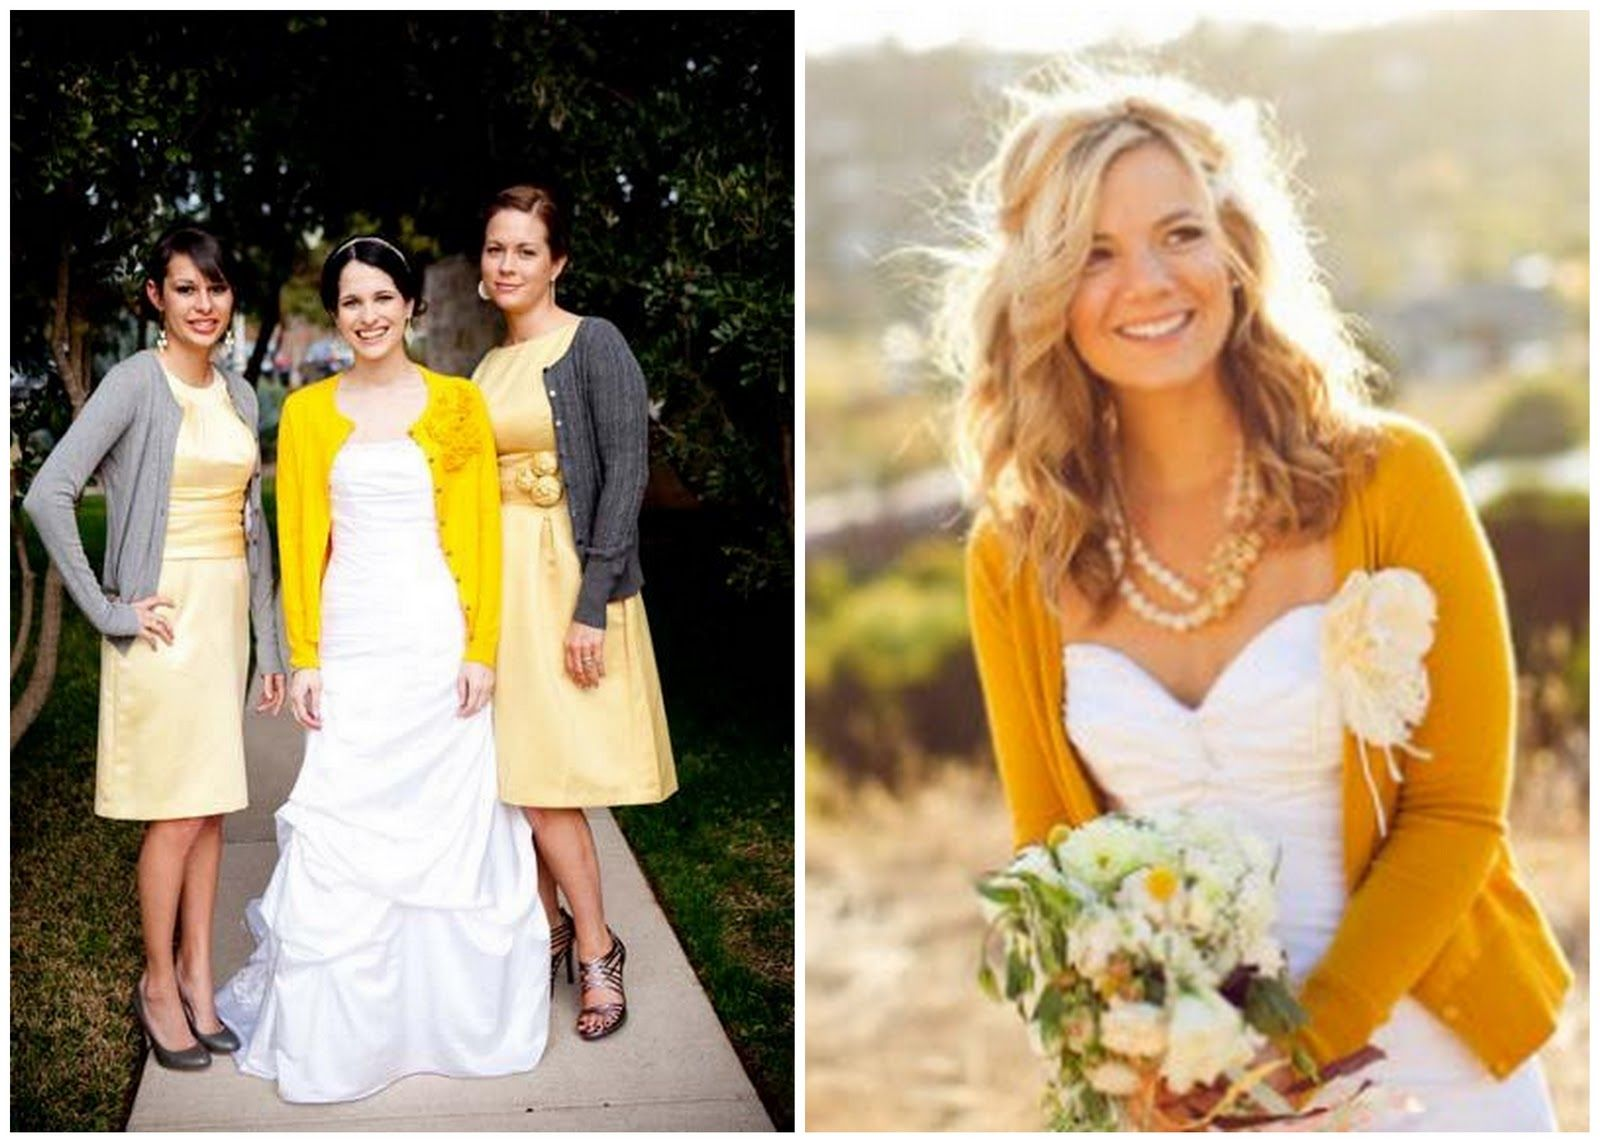 Shop at stores that mirror your wedding style and look for dresses